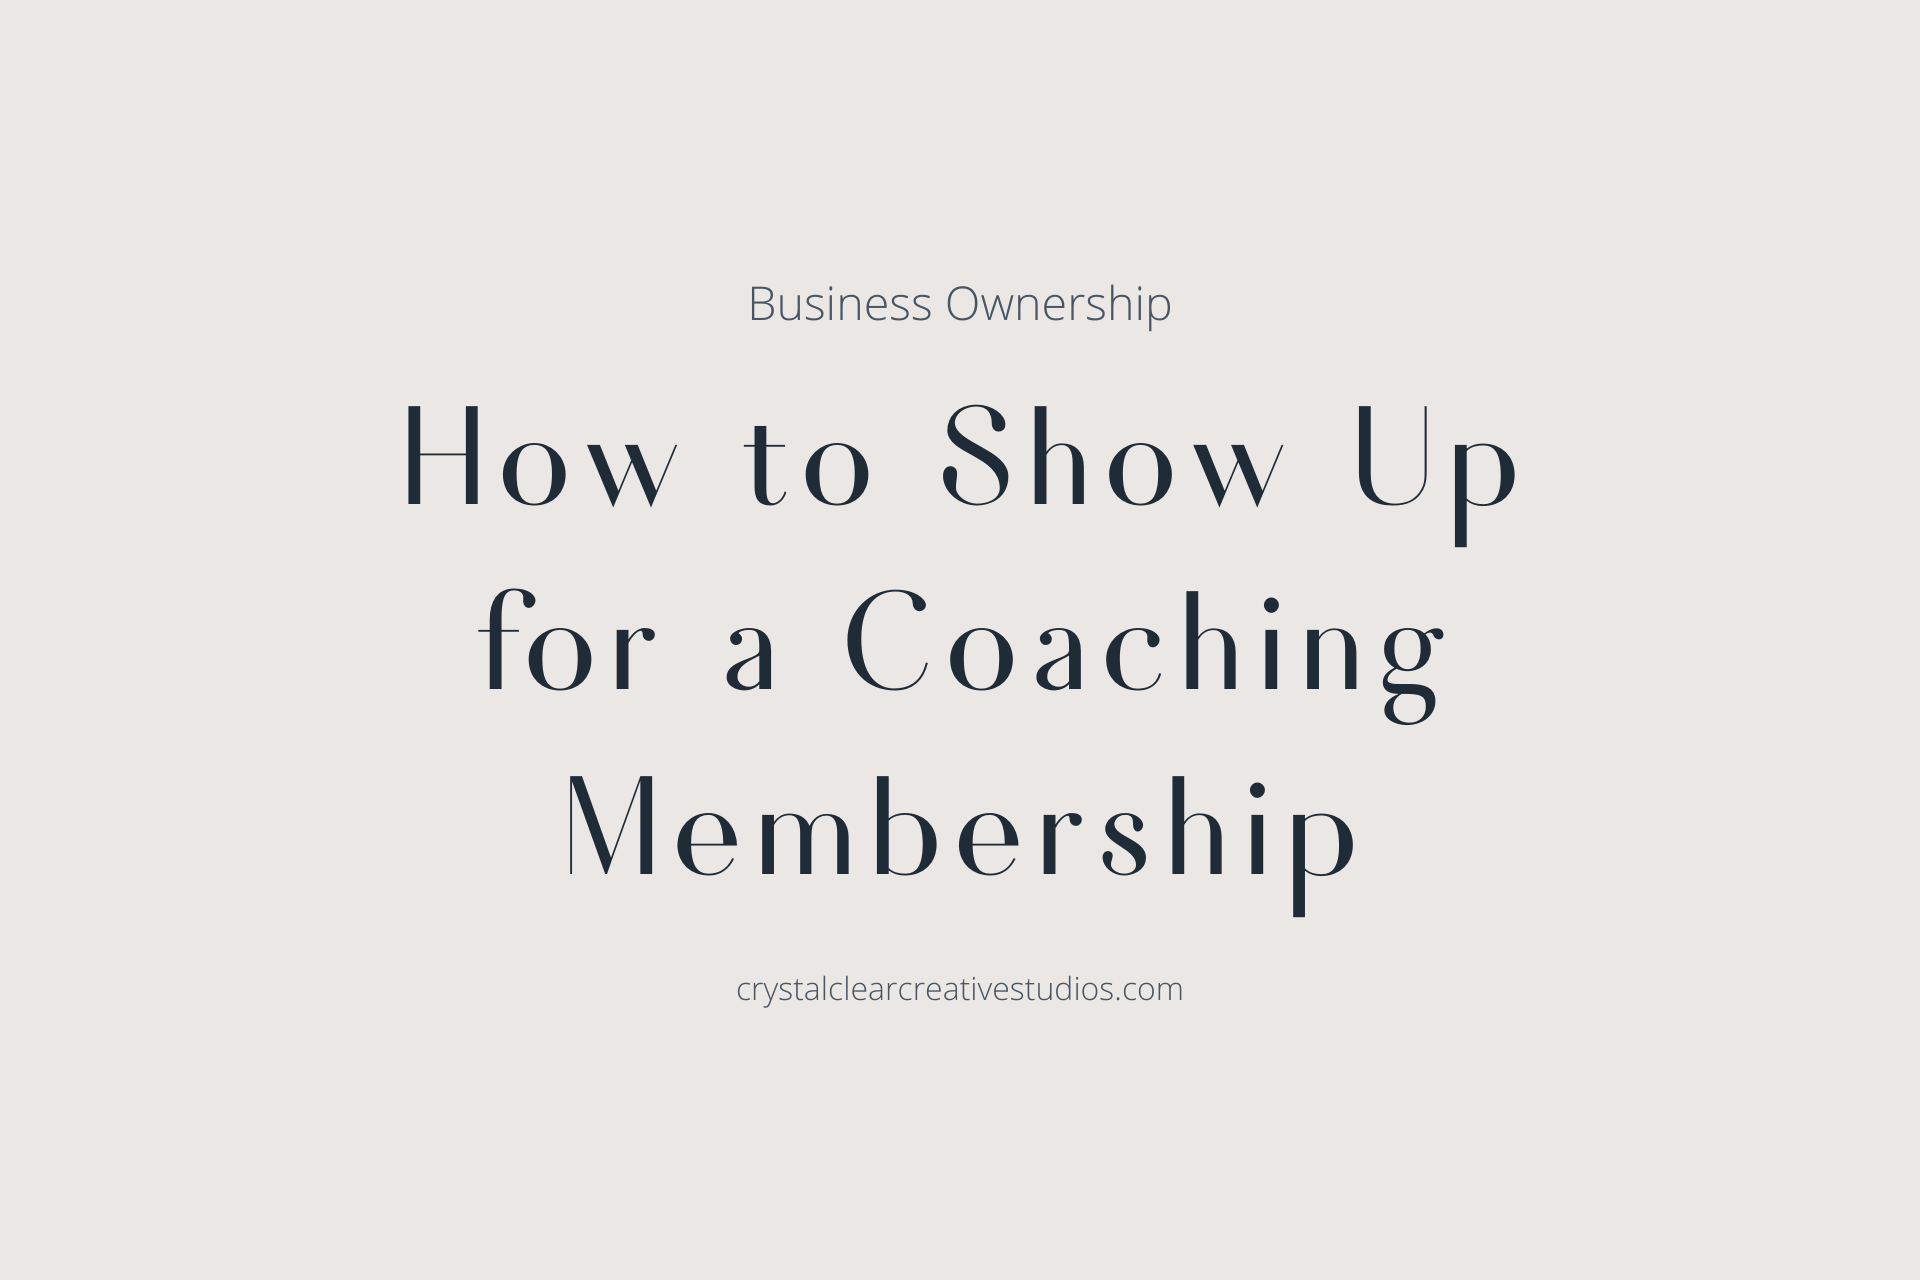 How to Show Up for a Coaching Membership